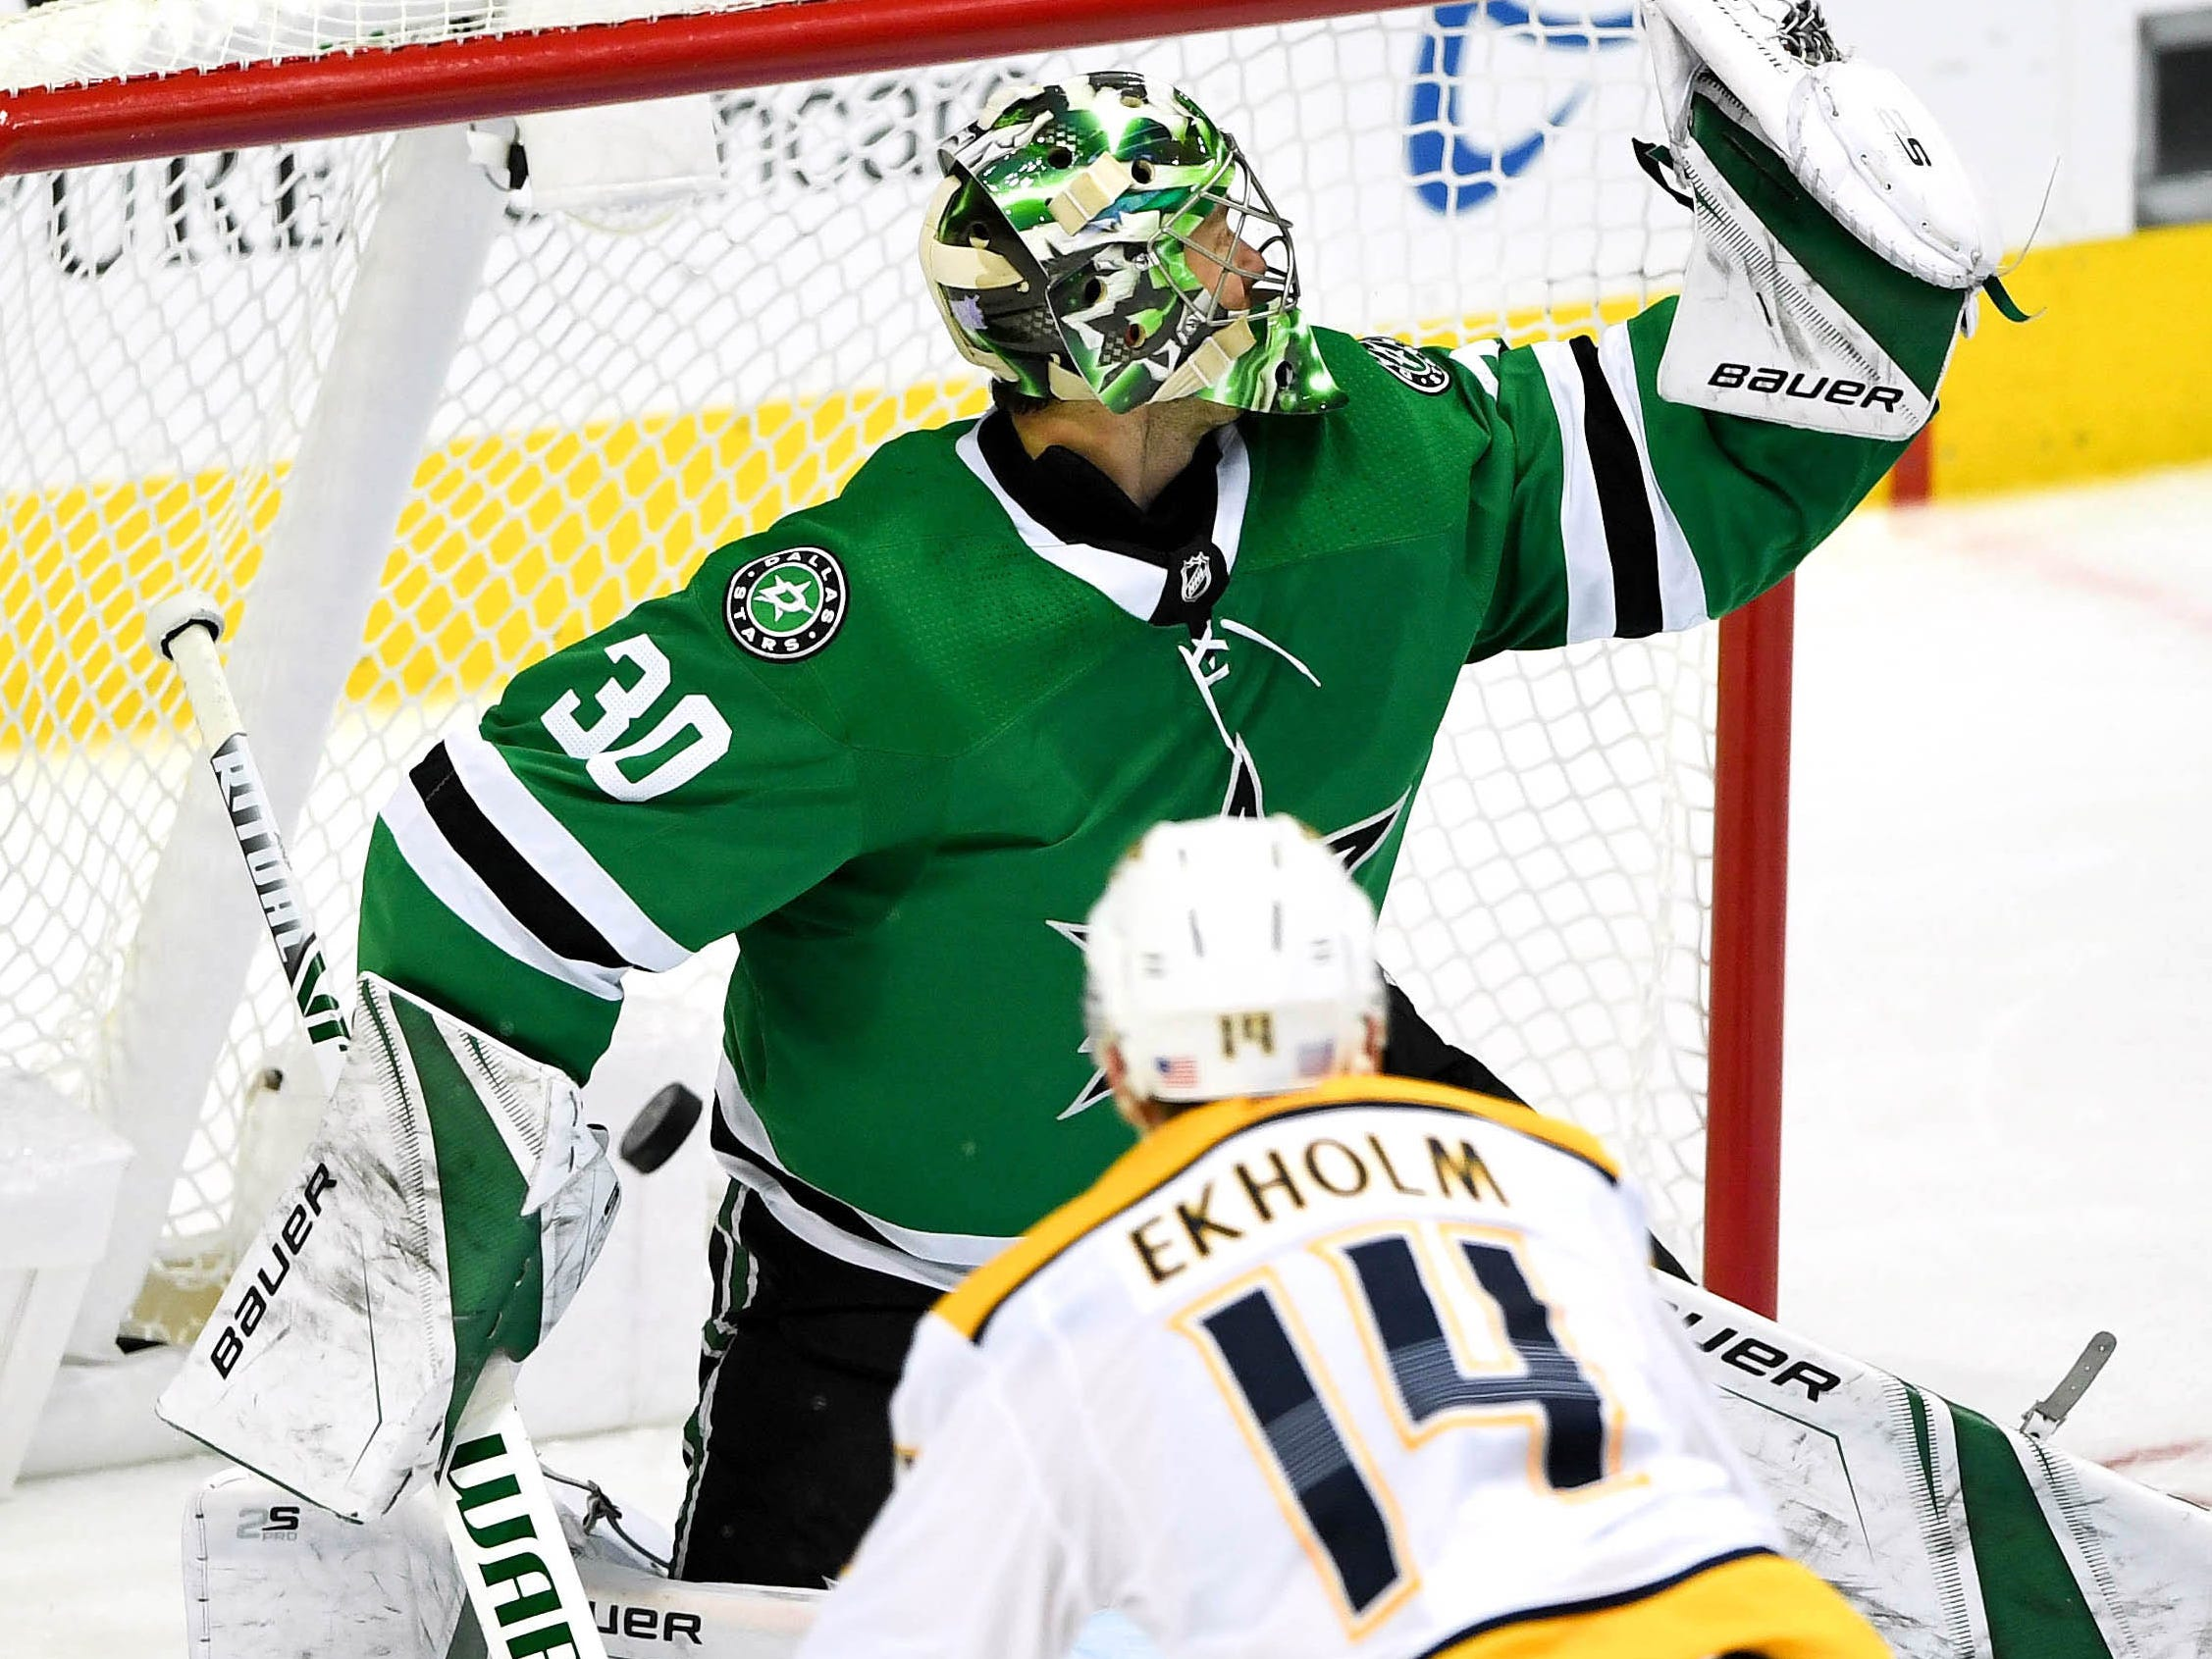 Nov. 10 -- Predators 5, Stars 4/OT -- Nashville Predators defenseman Mattias Ekholm (14) watches his winning goal get past Dallas Stars goaltender Ben Bishop (30) during overtime at American Airlines Center.